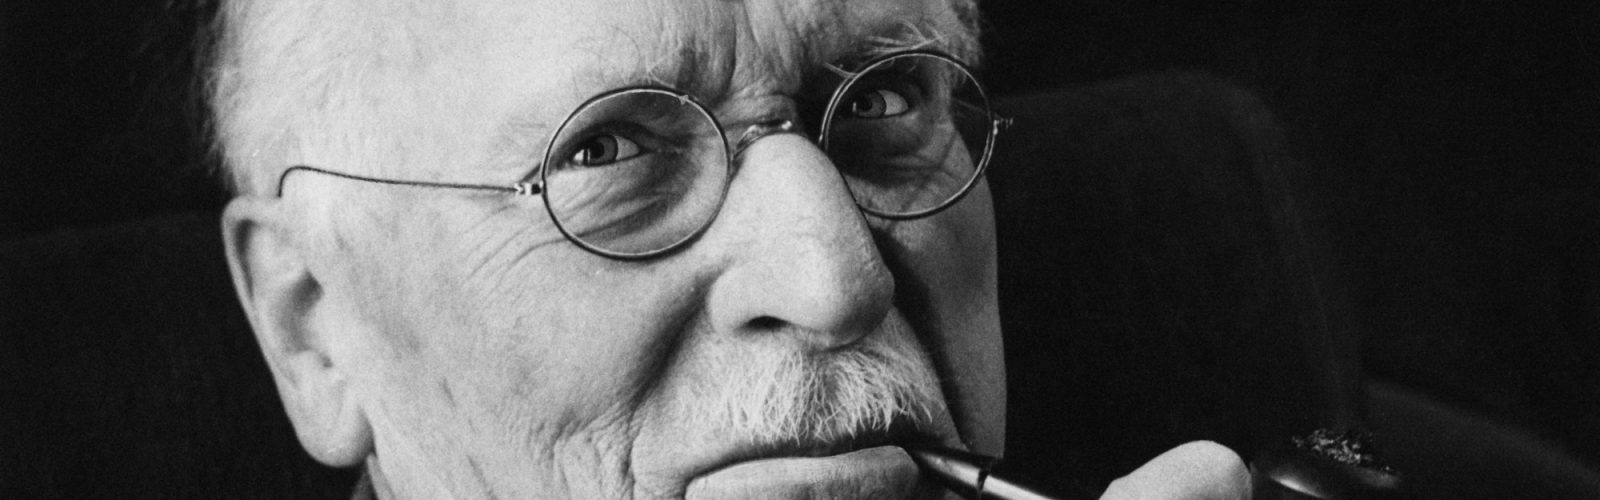 Swiss psychiatrist Carl Gustav Jung (1875 ? 1961), the founder of analytical psychology, 1960. (Photo by Douglas Glass/Paul Popper/Popperfoto/Getty Images)